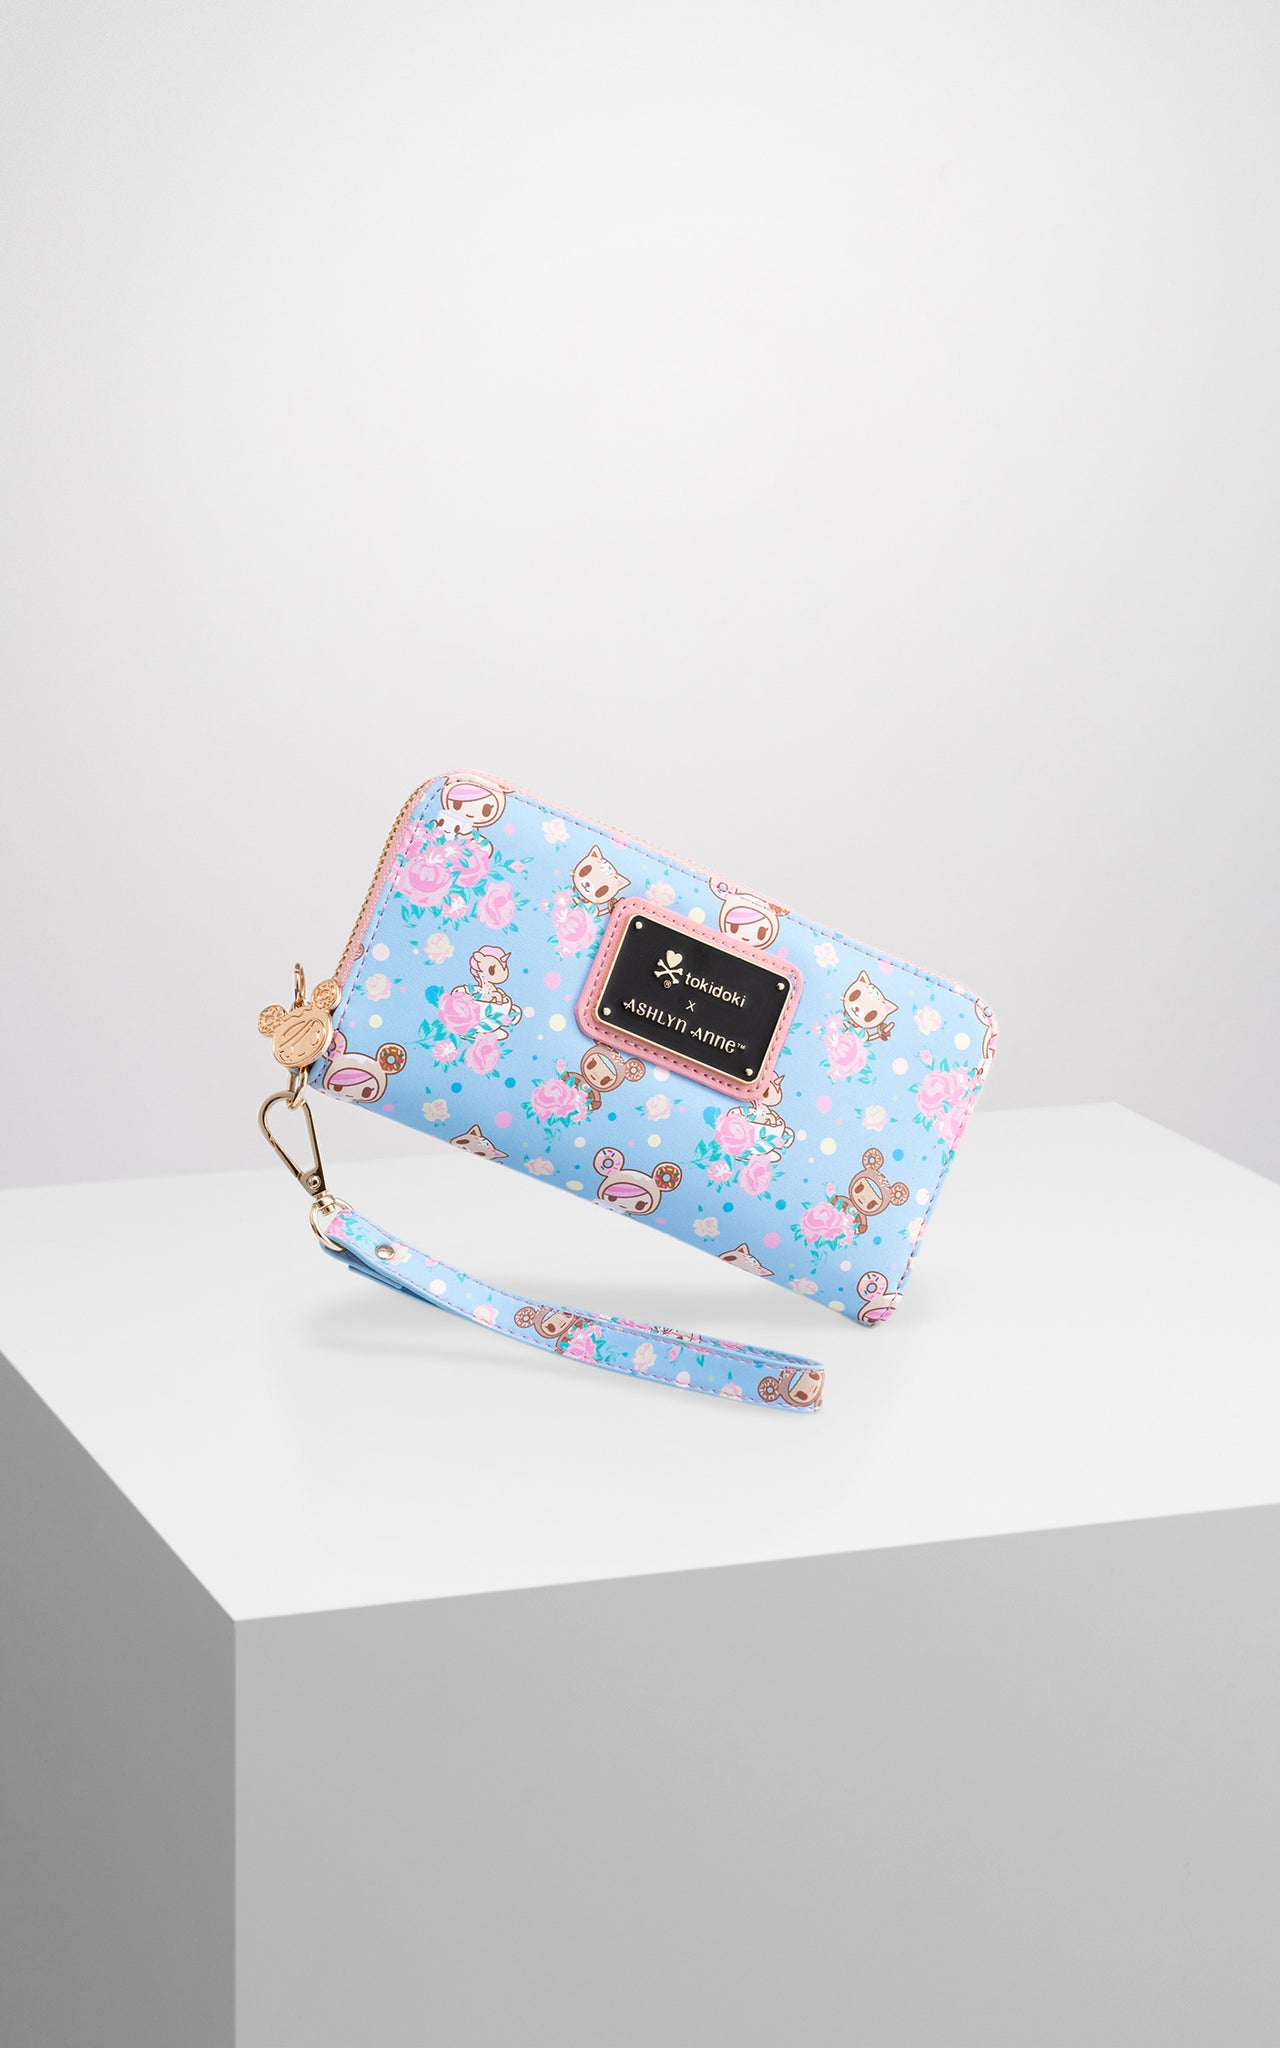 TDxAN Pastel Clover Wallet - A.Anne, Tokidoki, Ashlyn Anne, Fashion, Handbags, School, Bag, Accessories